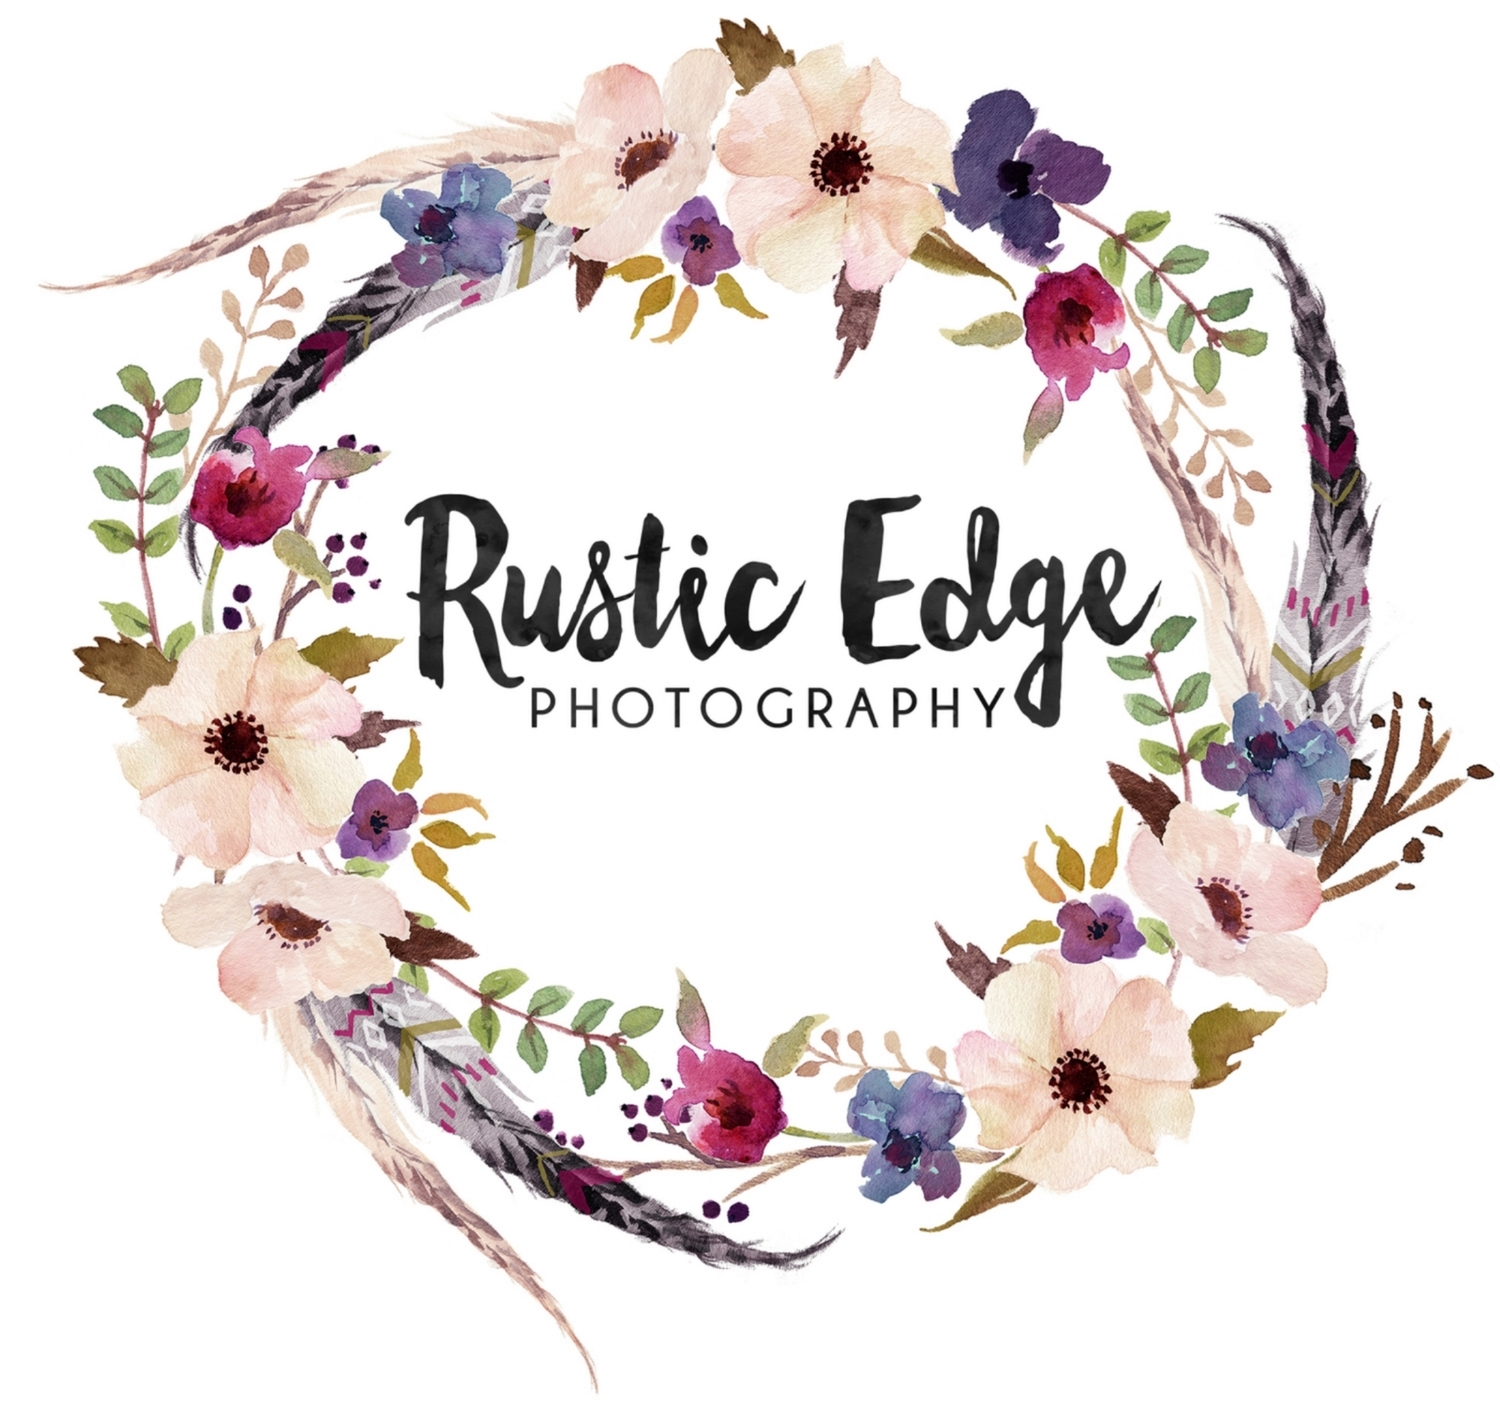 Rustic Edge Photography